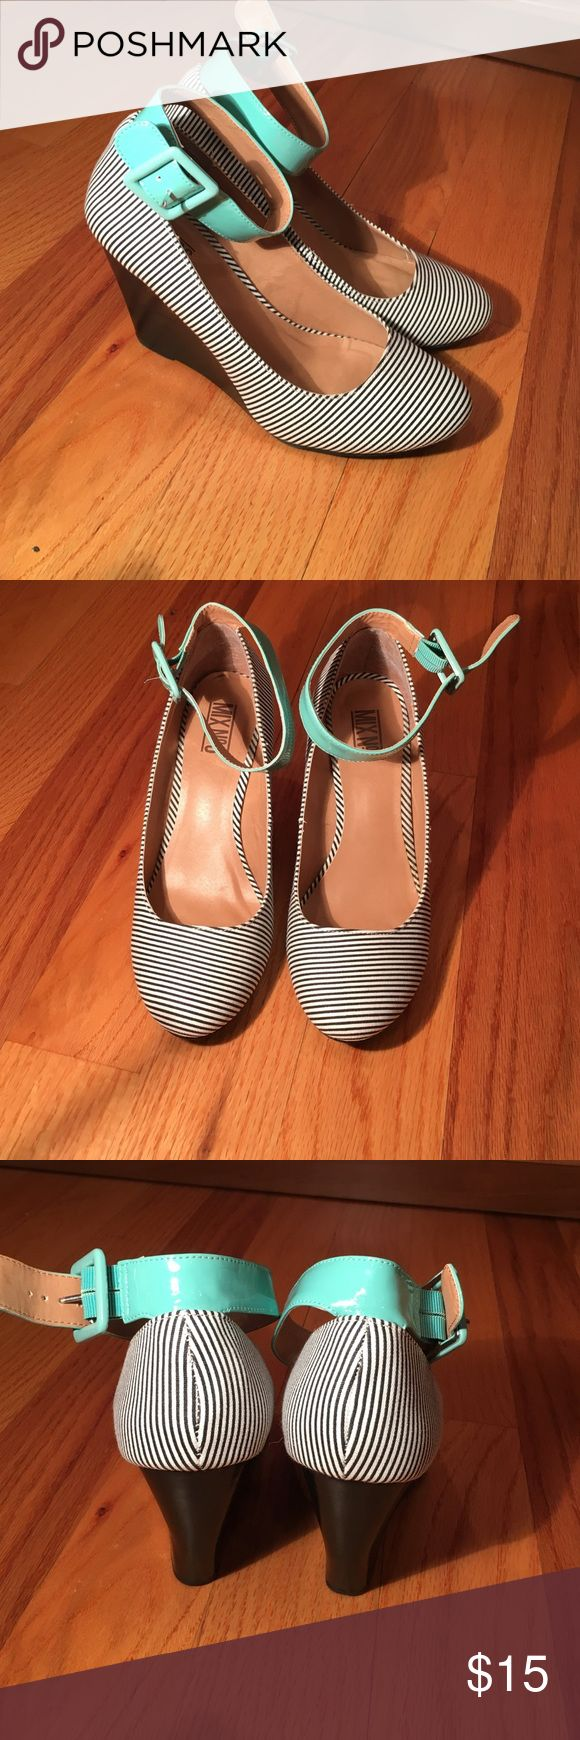 Mix no. 6 wedges Striped wedges with mint green ankle strap, approx. 3 inches high Mix No. 6 Shoes Wedges